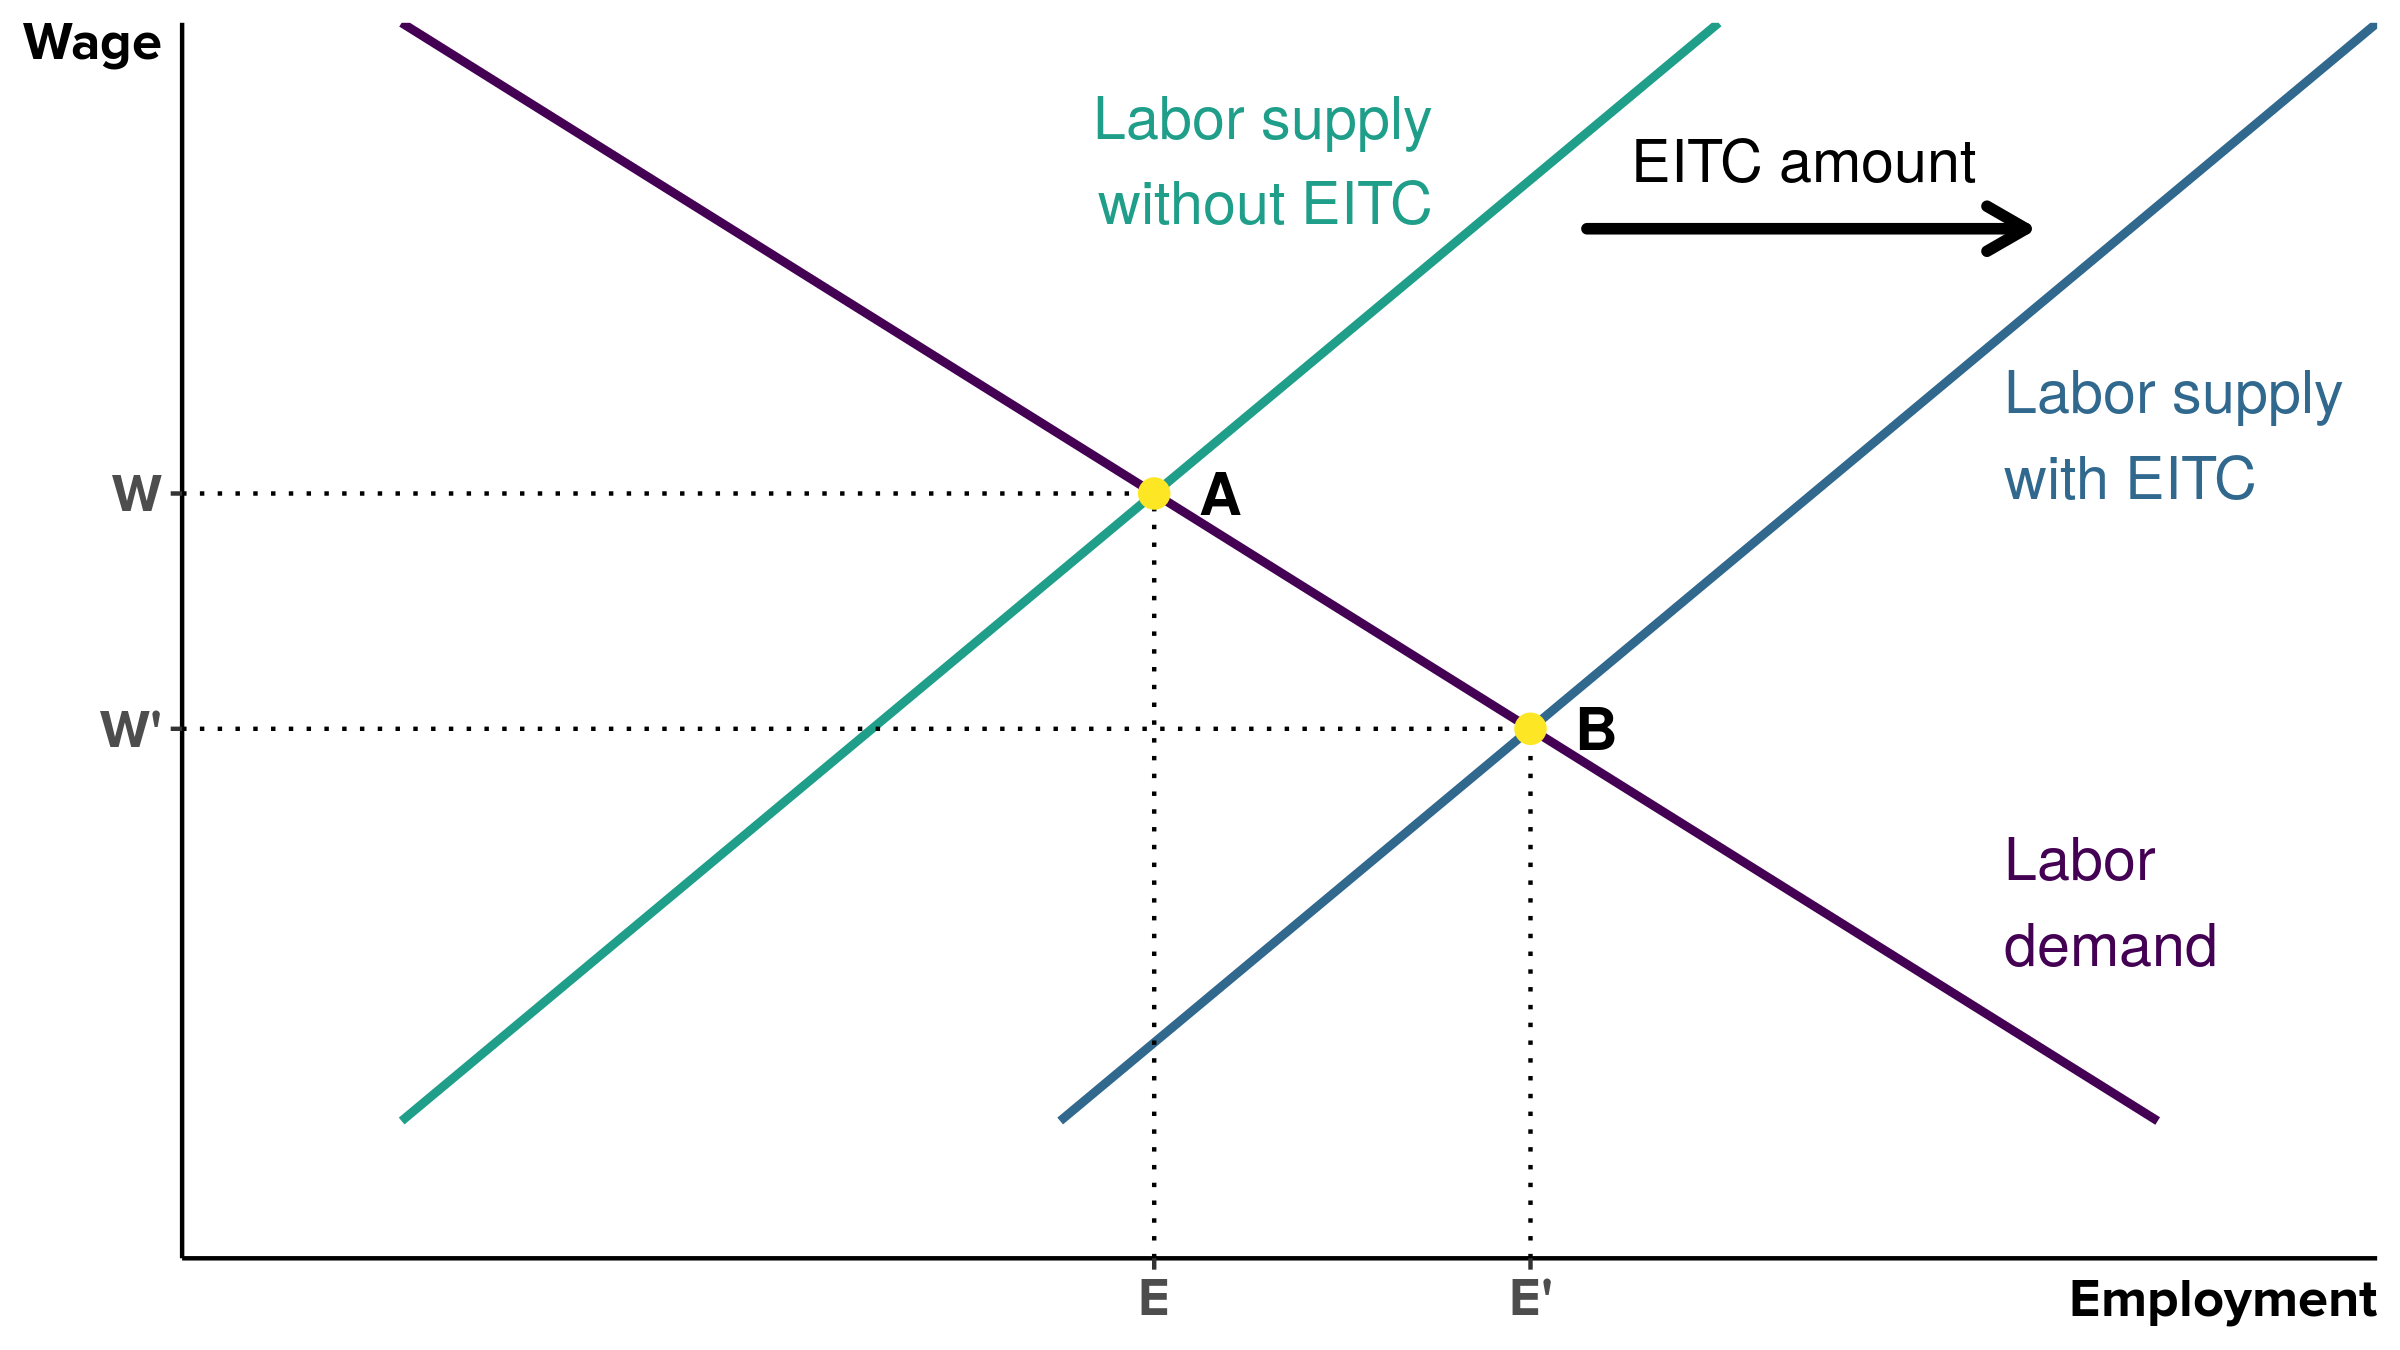 The Earned Income Tax Credit increases employment at the expense of lowering pretax wages : Labor supply effects of EITC in a perfectly competitive labor market